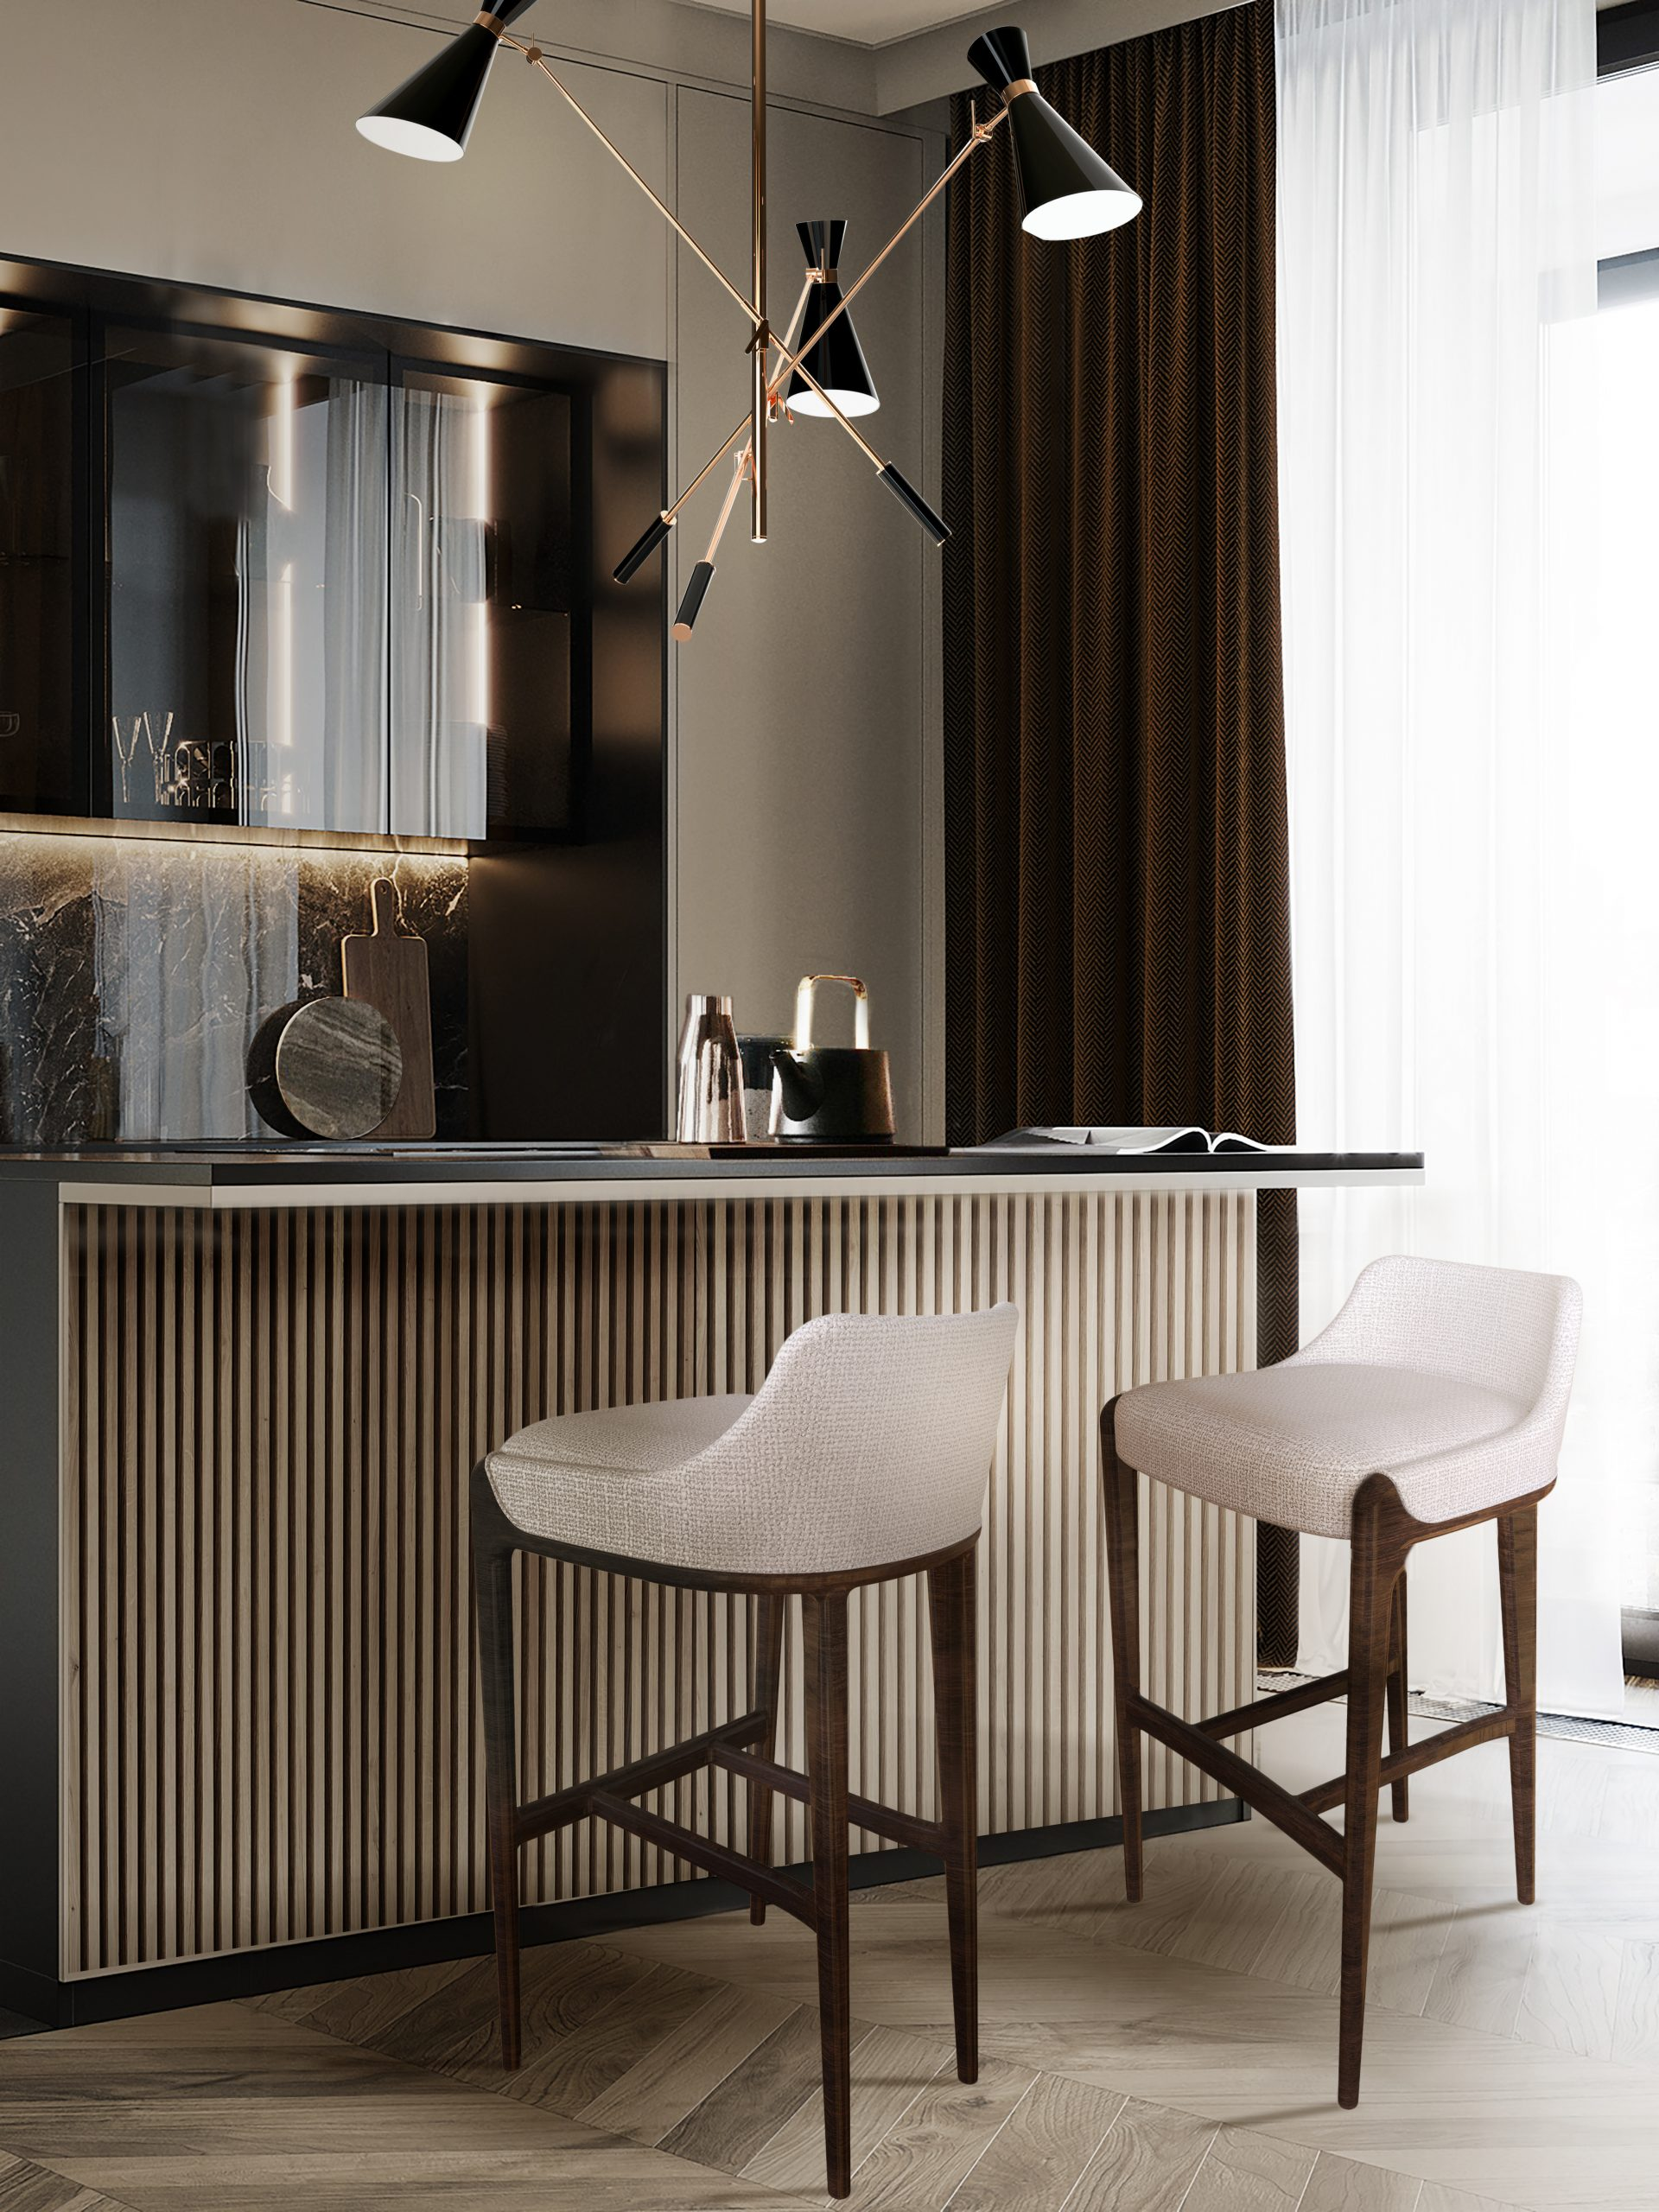 We'll Finally State the Difference Between Contemporary and Modern Interior Designs! contemporary and modern We'll Finally State the Difference Between Contemporary and Modern Interior Designs! 6 1 scaled